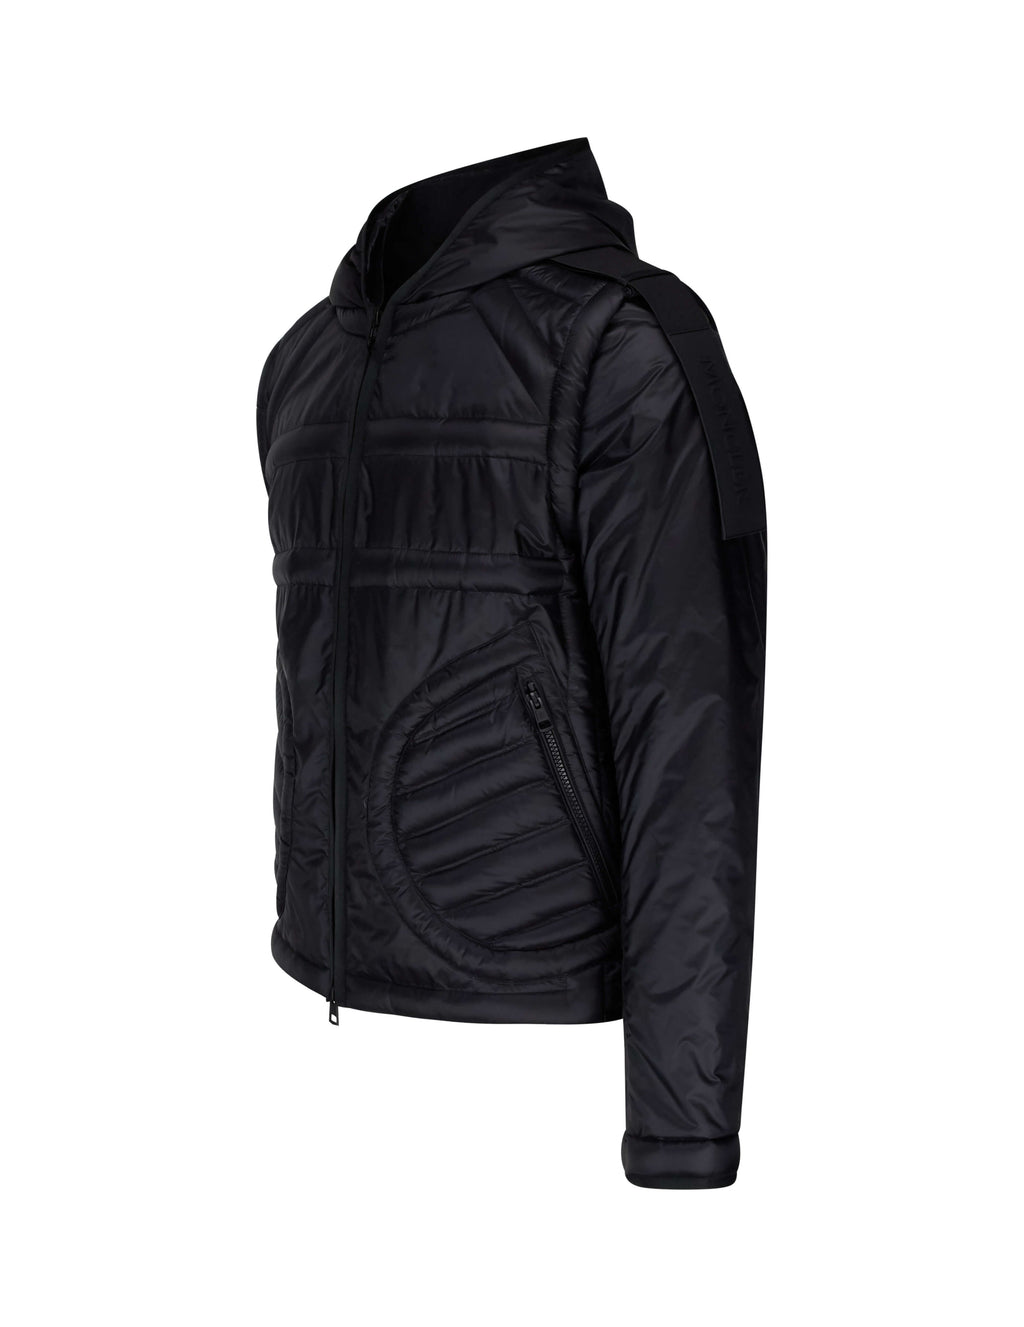 5 Moncler Craig Green Men's Giulio Fashion Black Apex Jacket 4138550C0051999